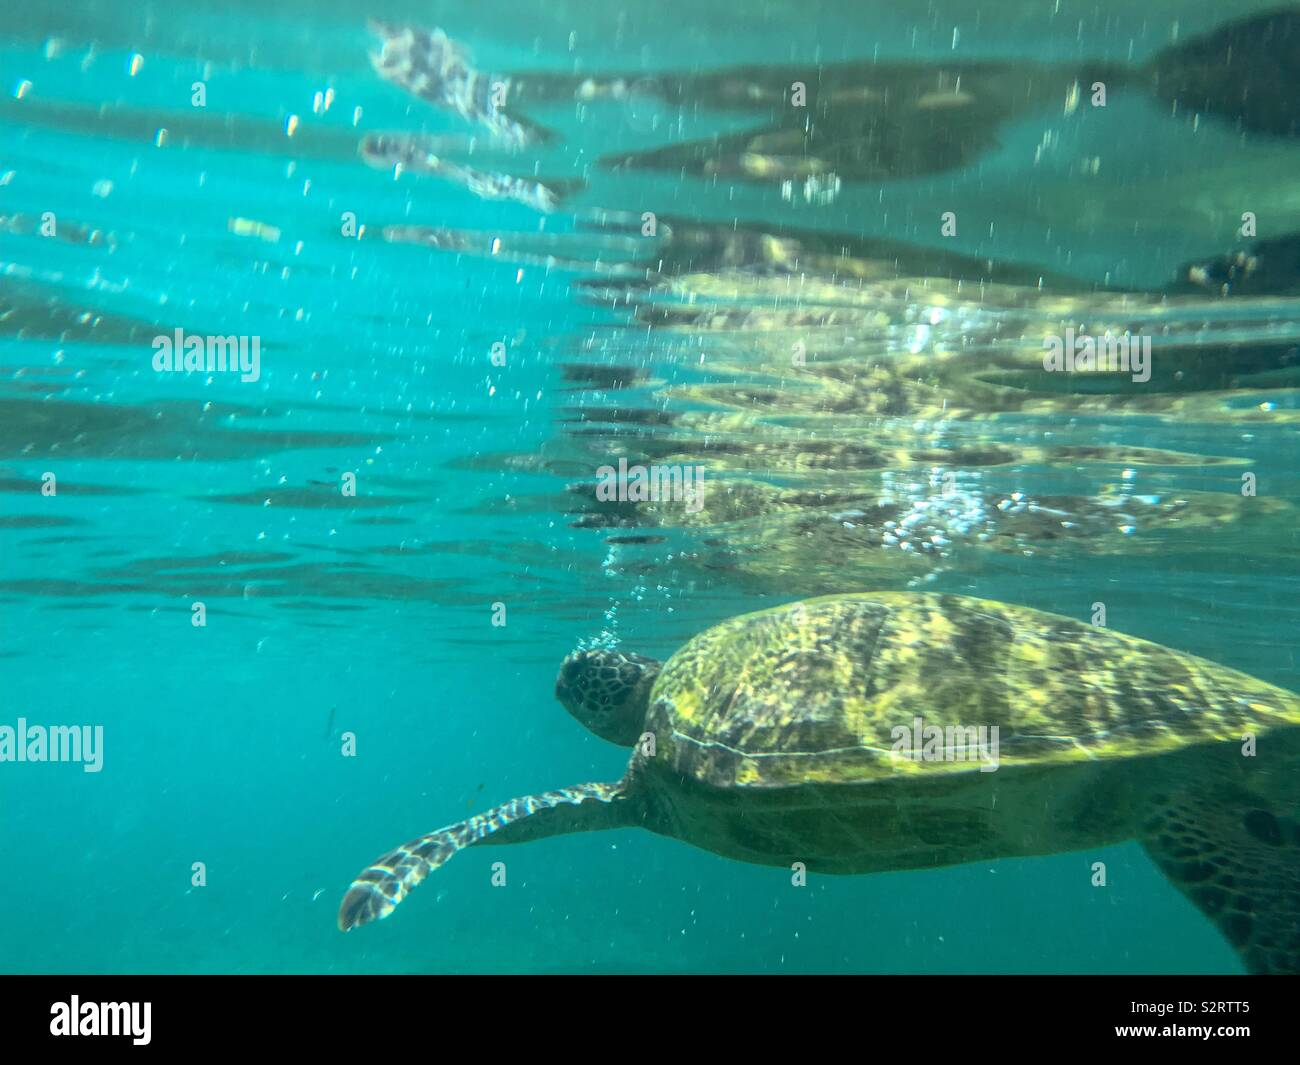 Swimming with turtles - Stock Image